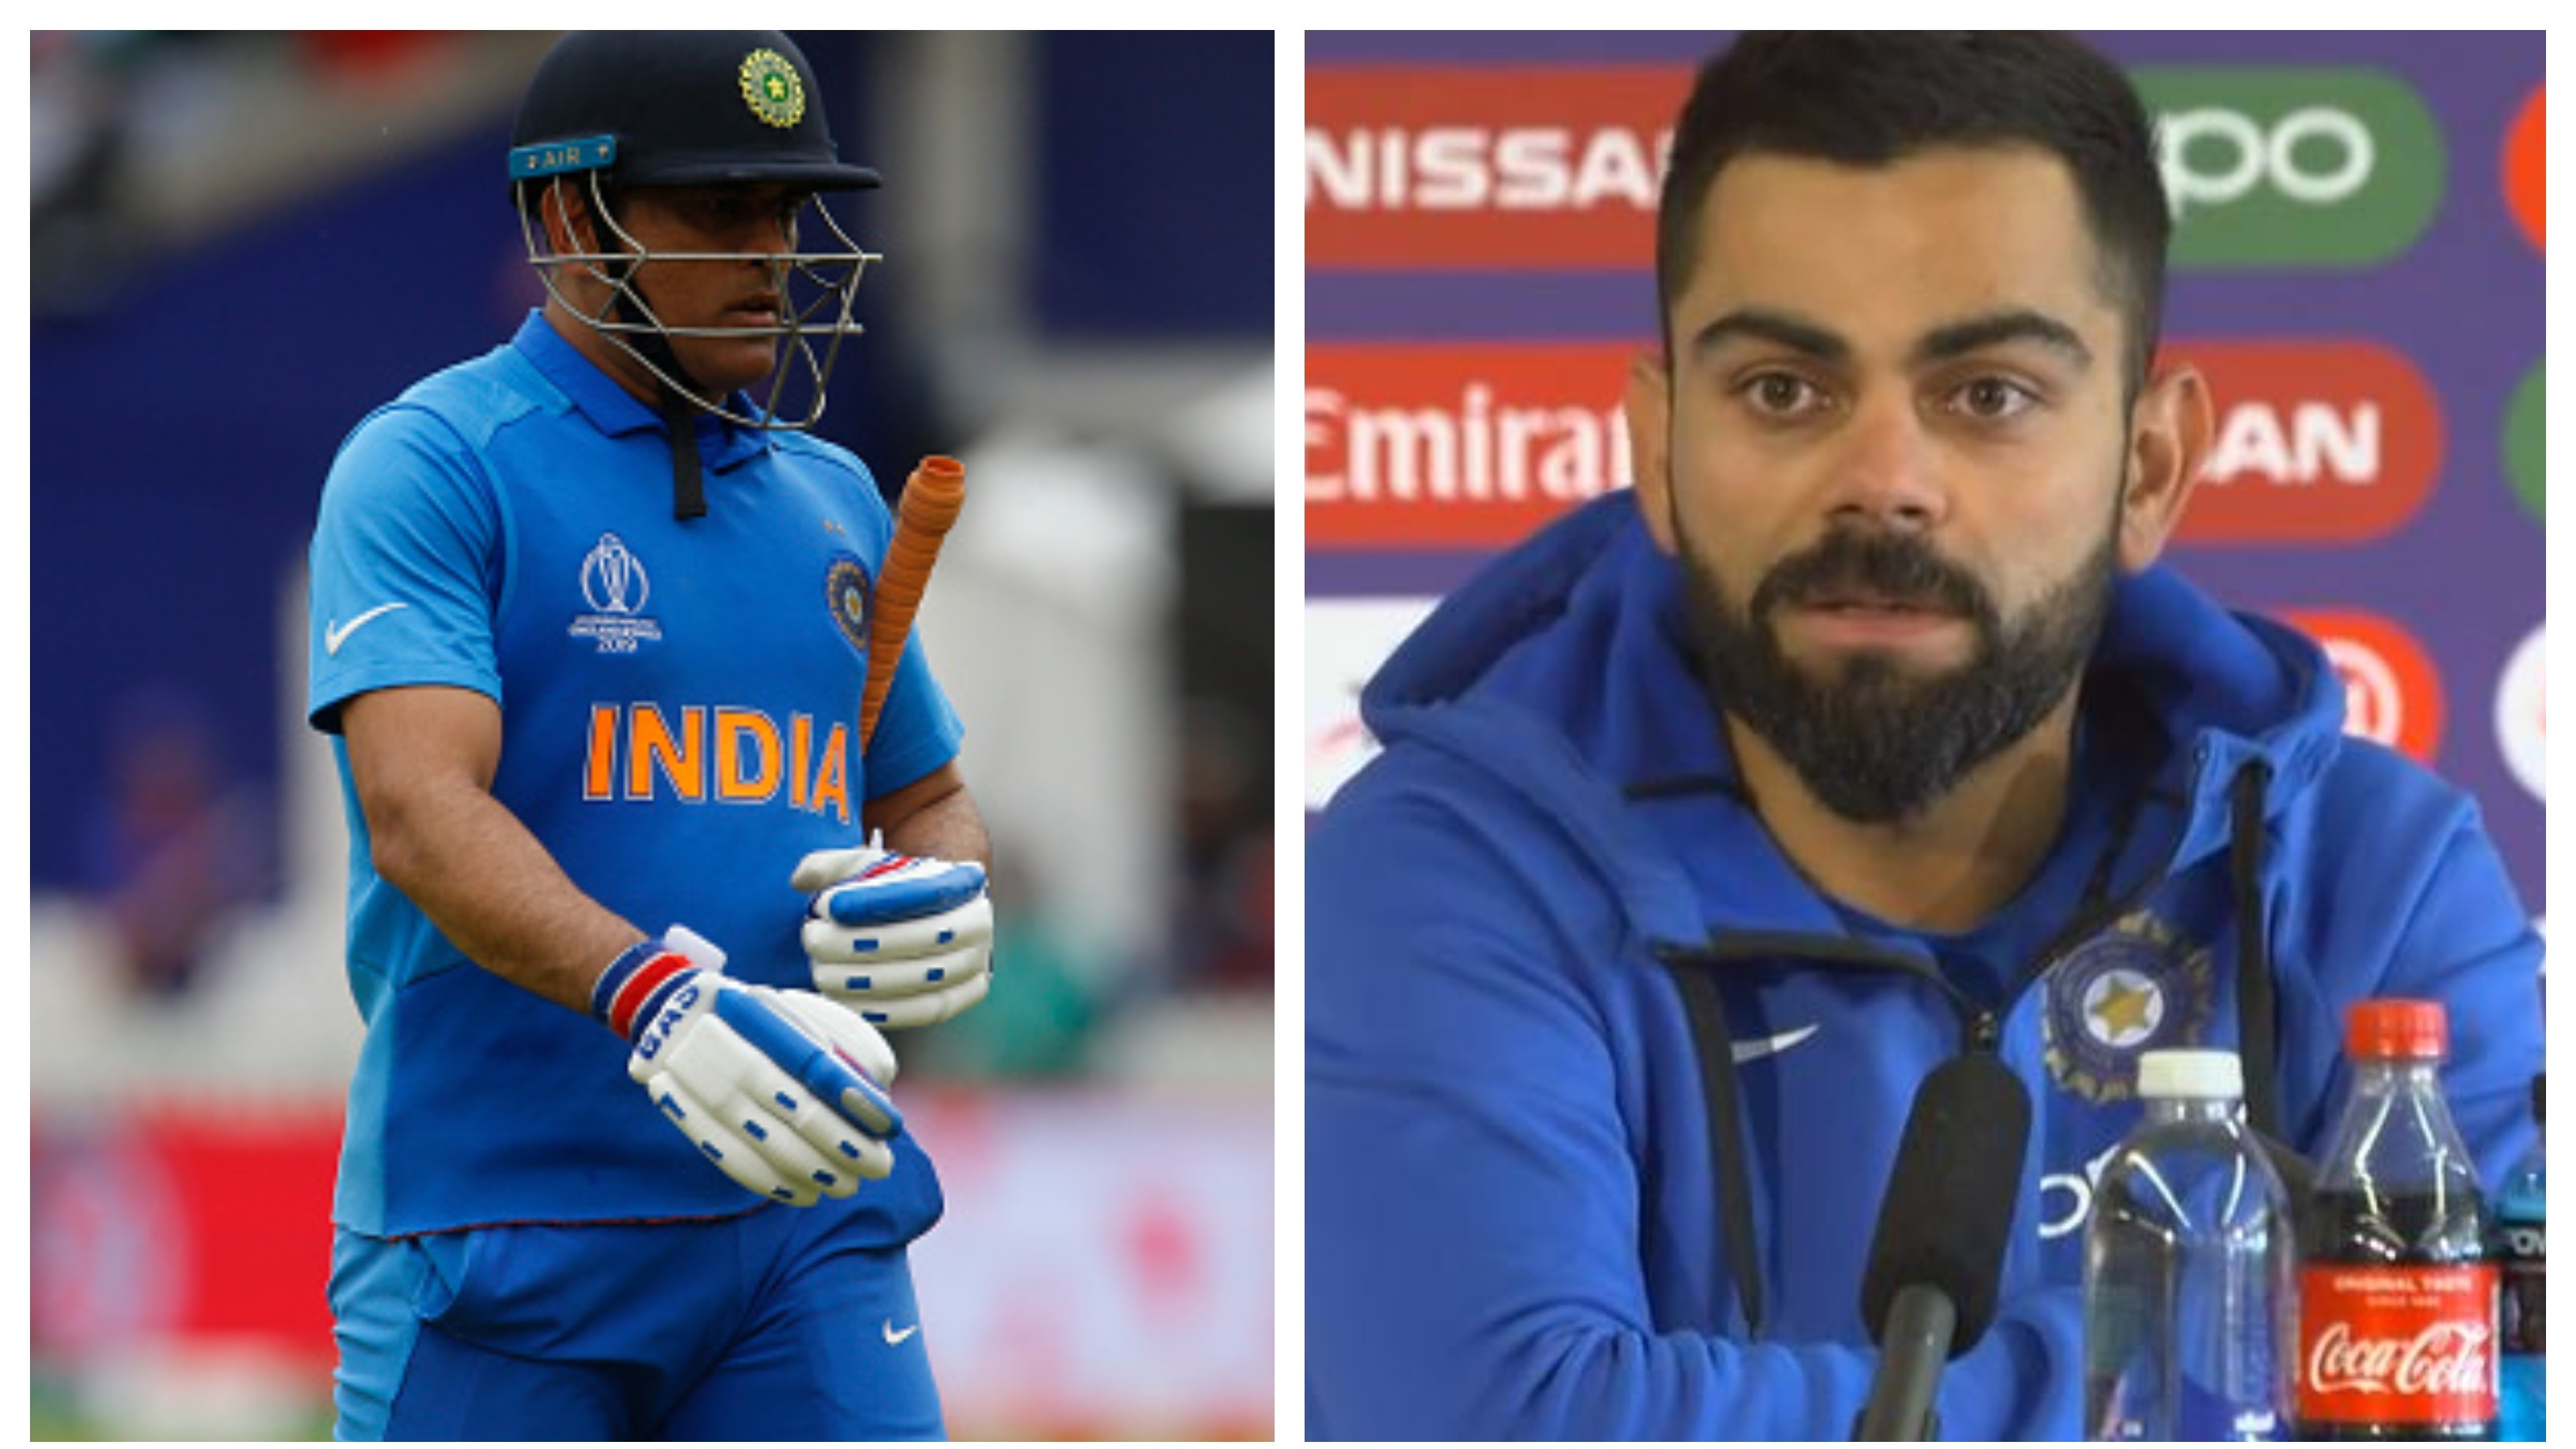 CWC 2019: Virat Kohli reacts to criticism on MS Dhoni after India's semi-final defeat to New Zealand